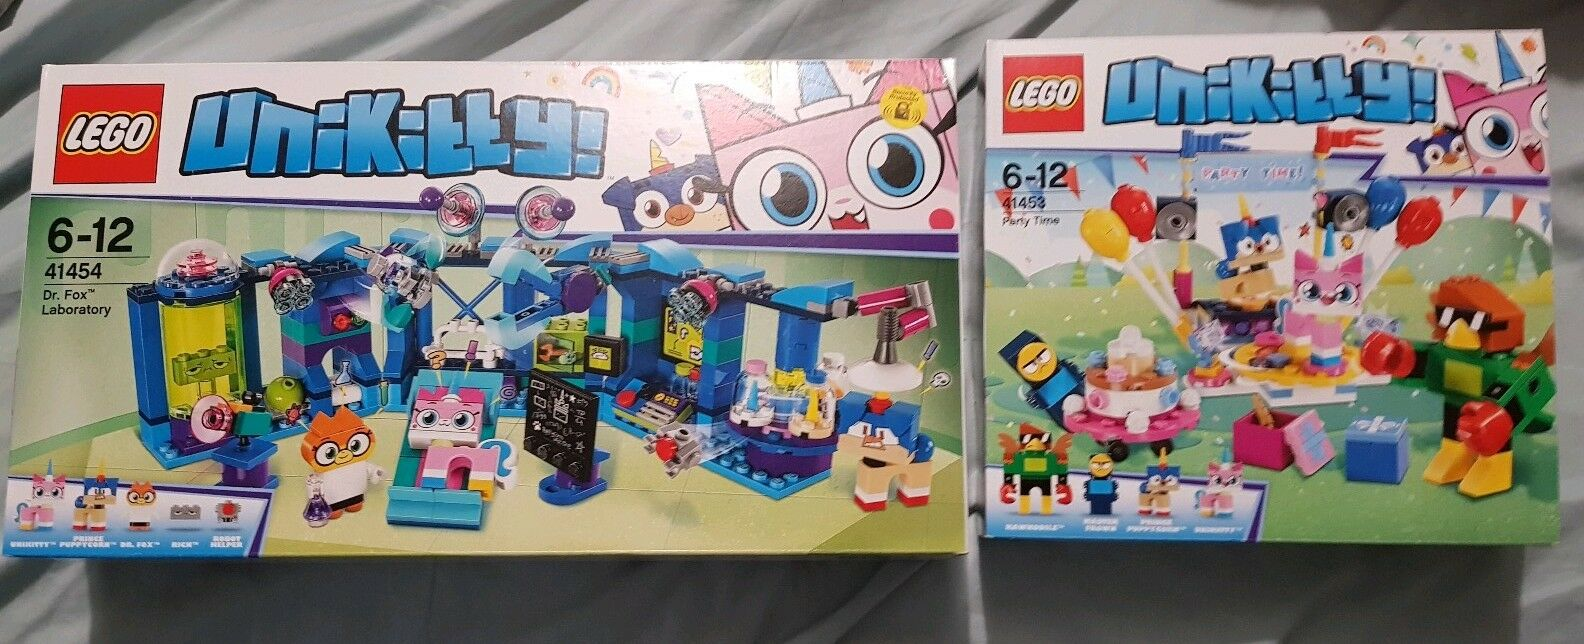 Lego Unikitty 41453 Party Time & 41454 Dr Fox's Laboratory - both NEW IN BOX